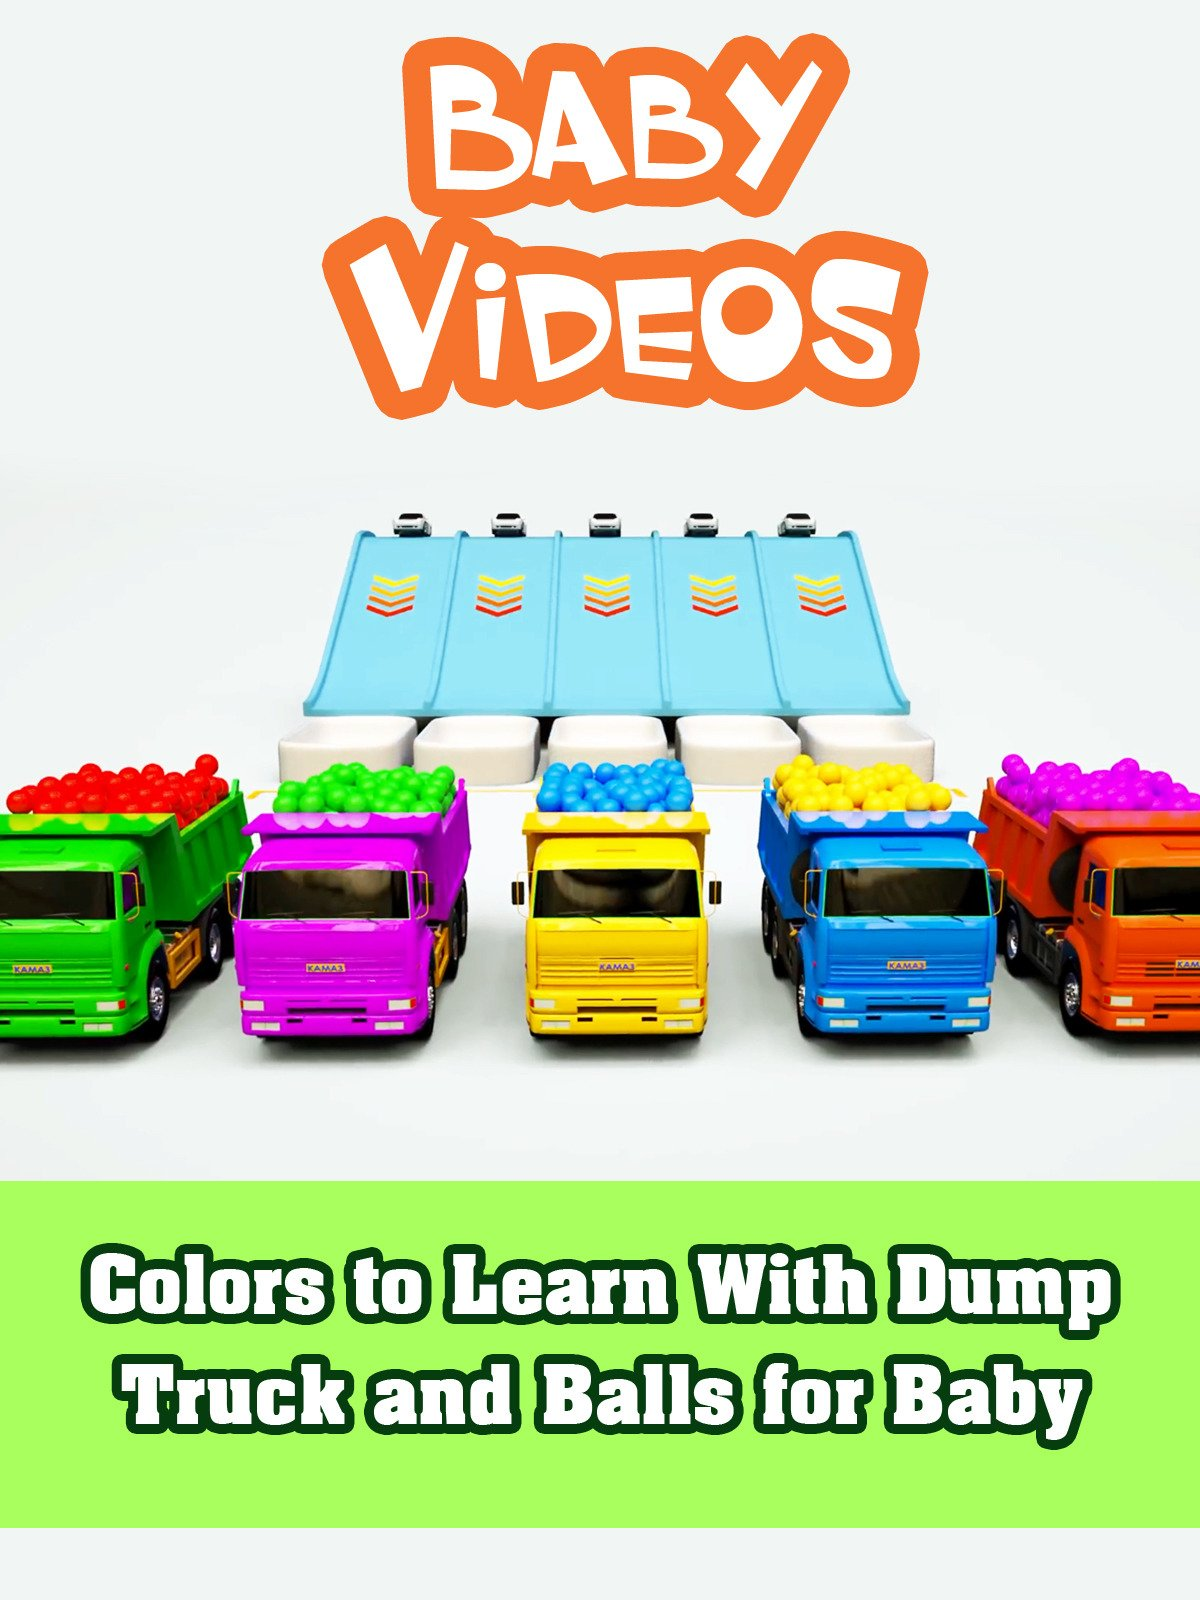 Colors to Learn With Dump Truck and Balls for Baby